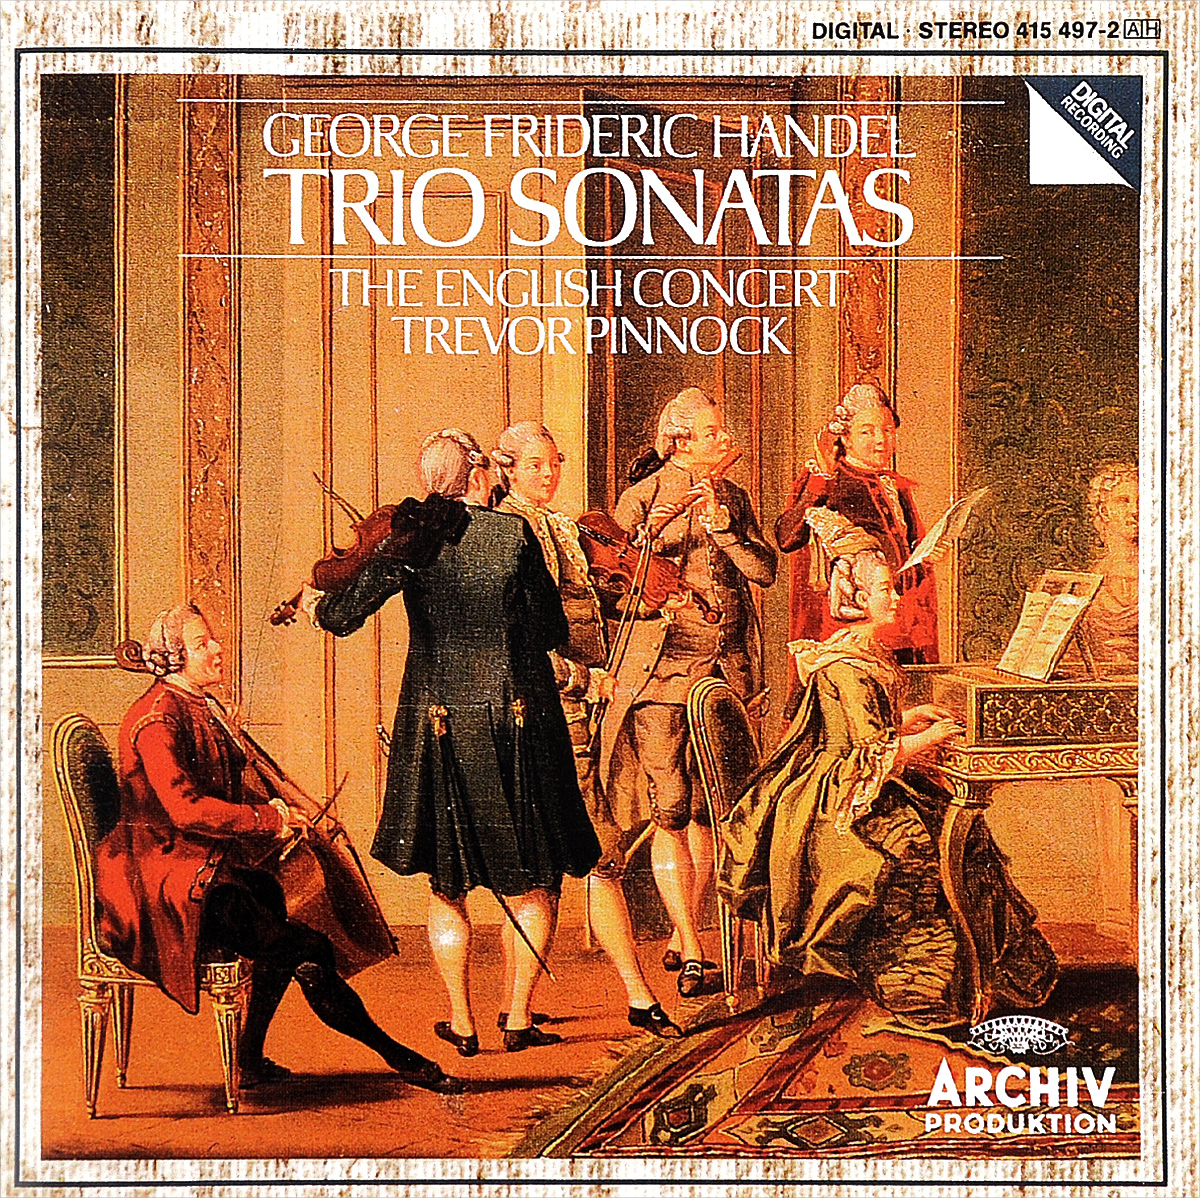 The English Concert,Тревор Пиннок Trevor Pinnock. Handel. Trio Sonatas саймон престон тревор пиннок the english concert orchestra simon preston trevor pinnock handel complete organ concertos 3 cd